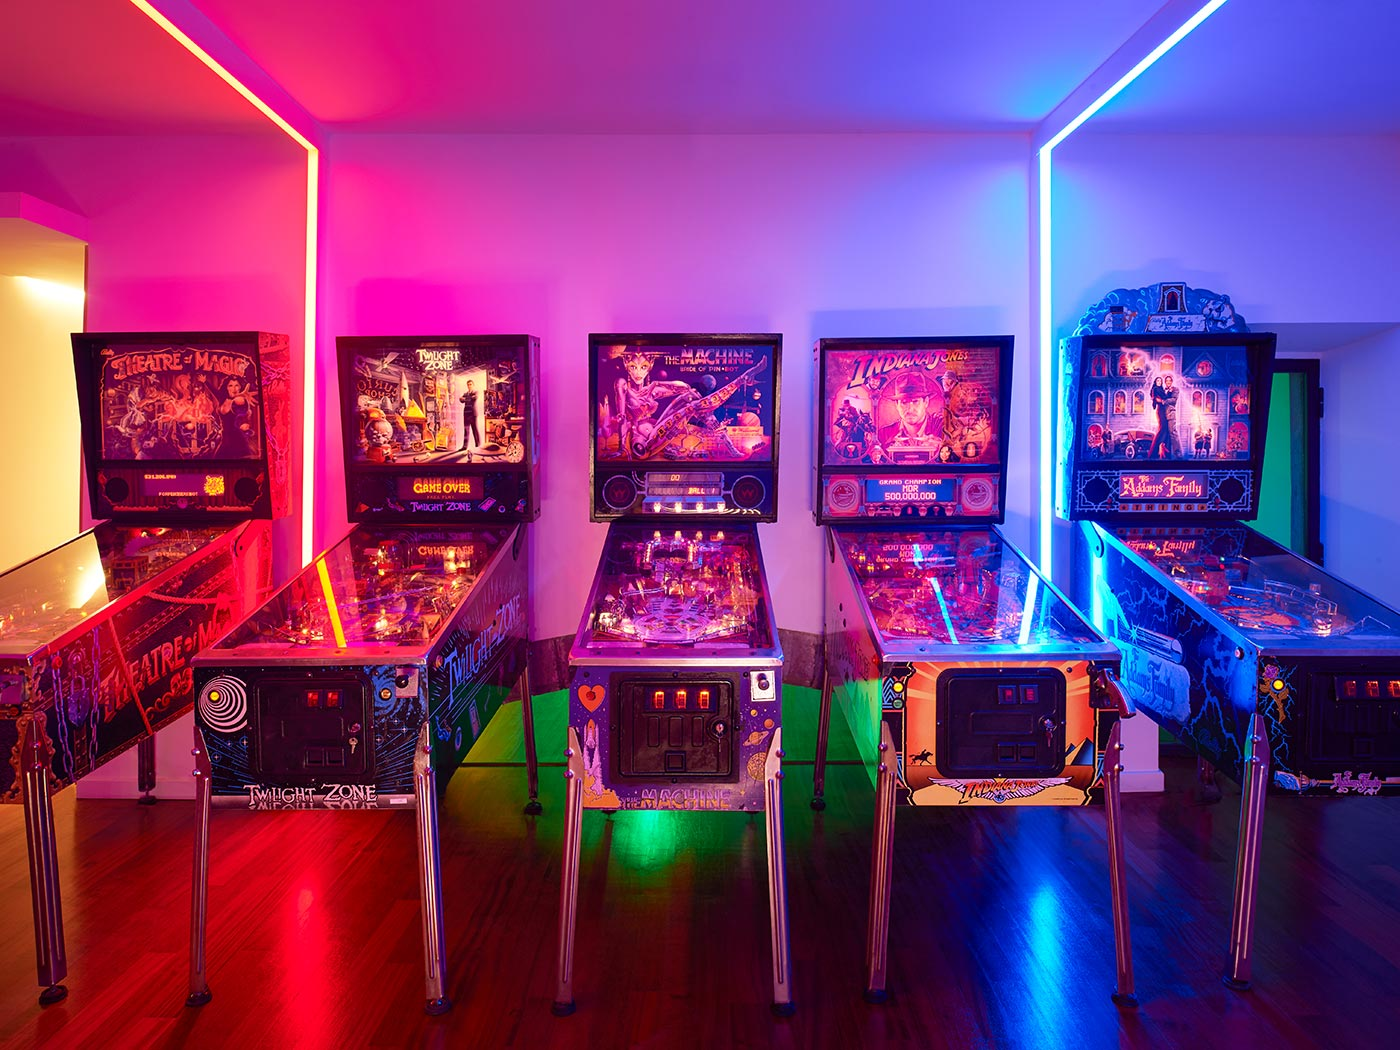 PST46_14740-MUSEO-FLIPPER-THE-PINBALL-LUXURY-SUITES